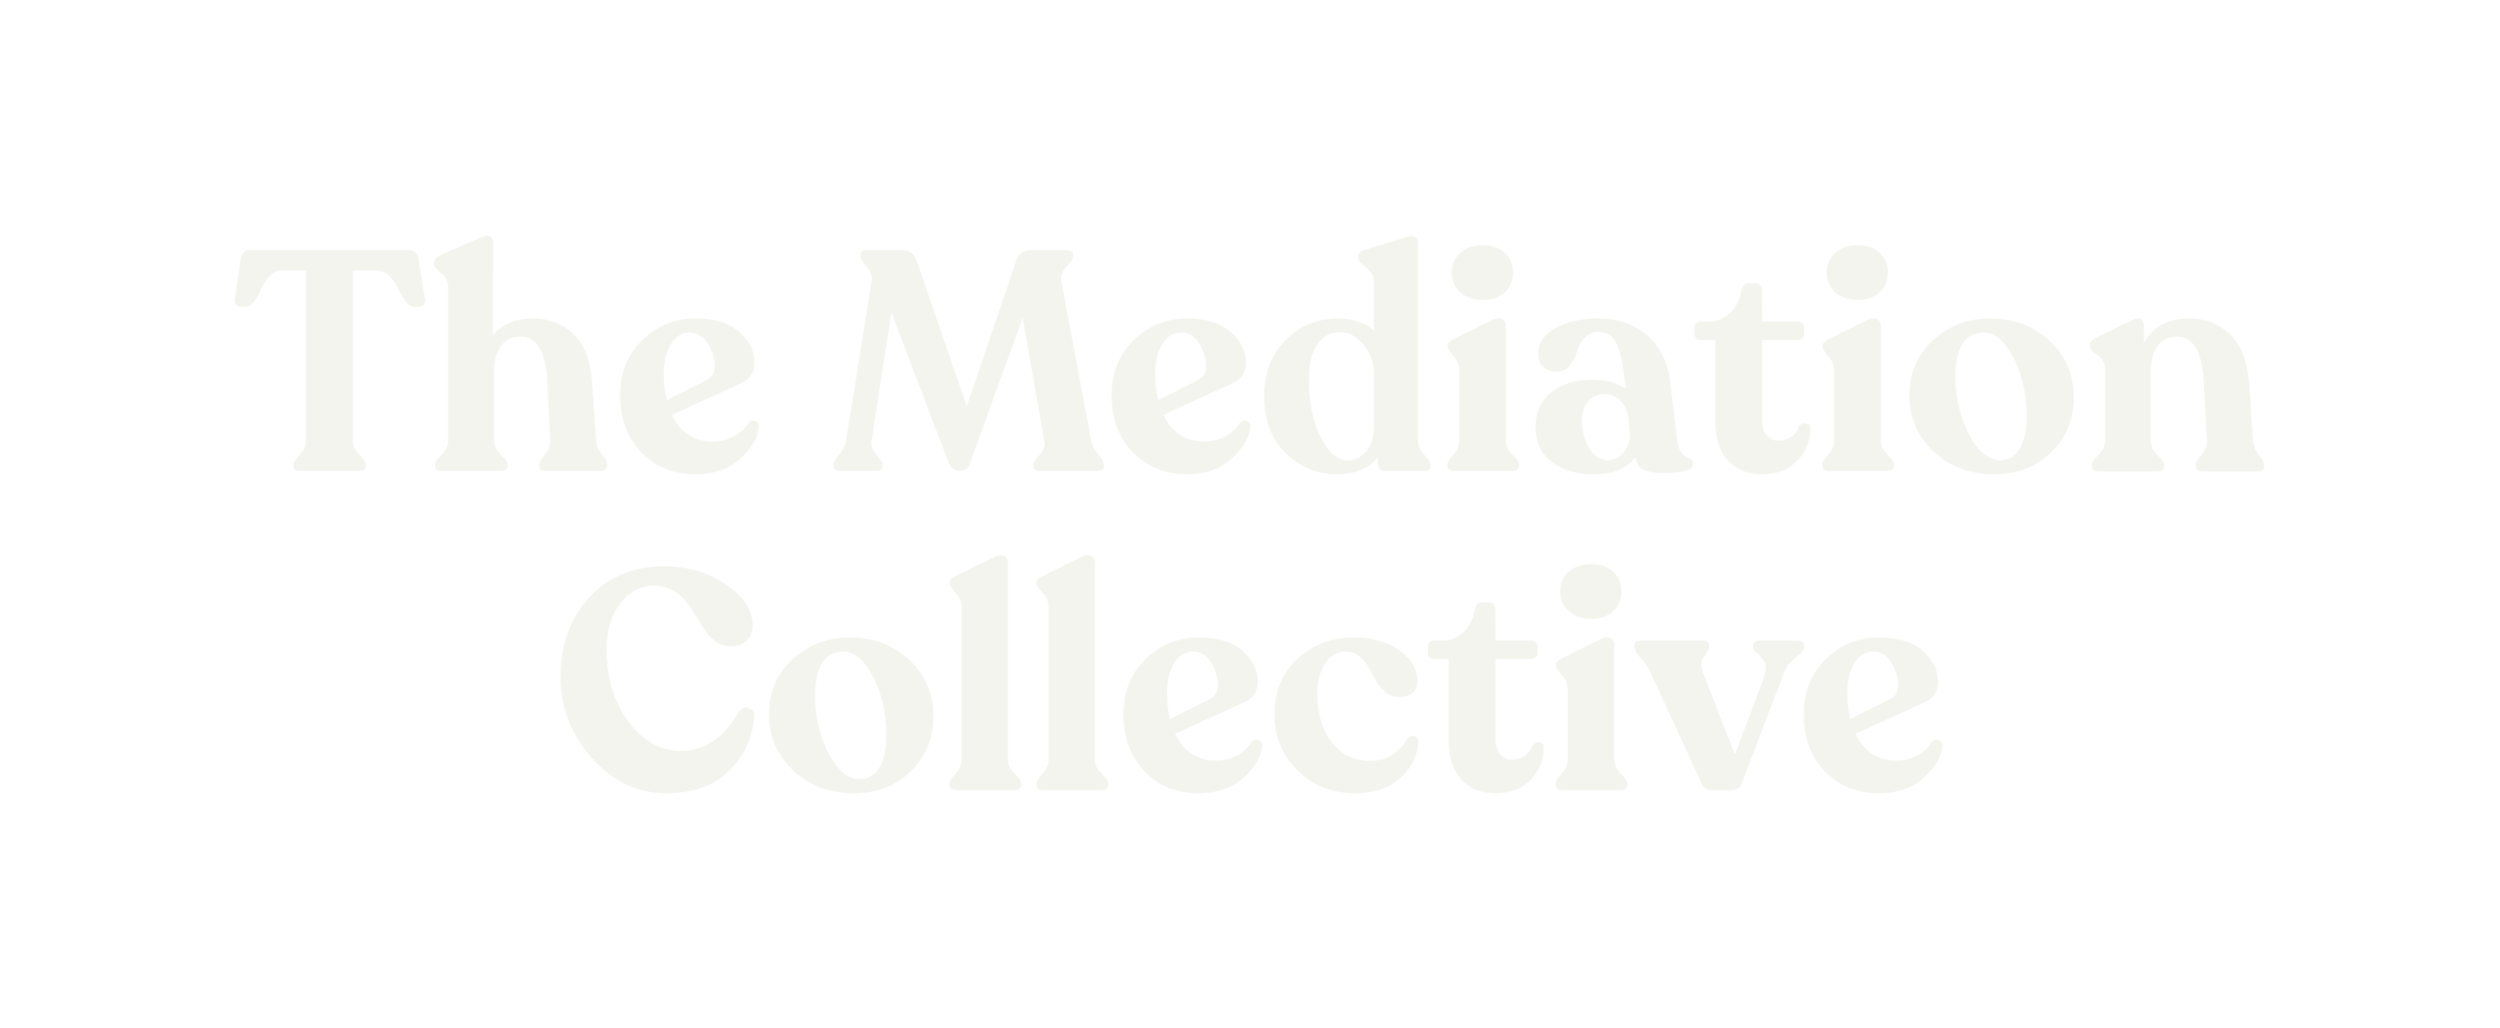 TheMediationCollective_PrimaryLogo_Neutral_RGB.png